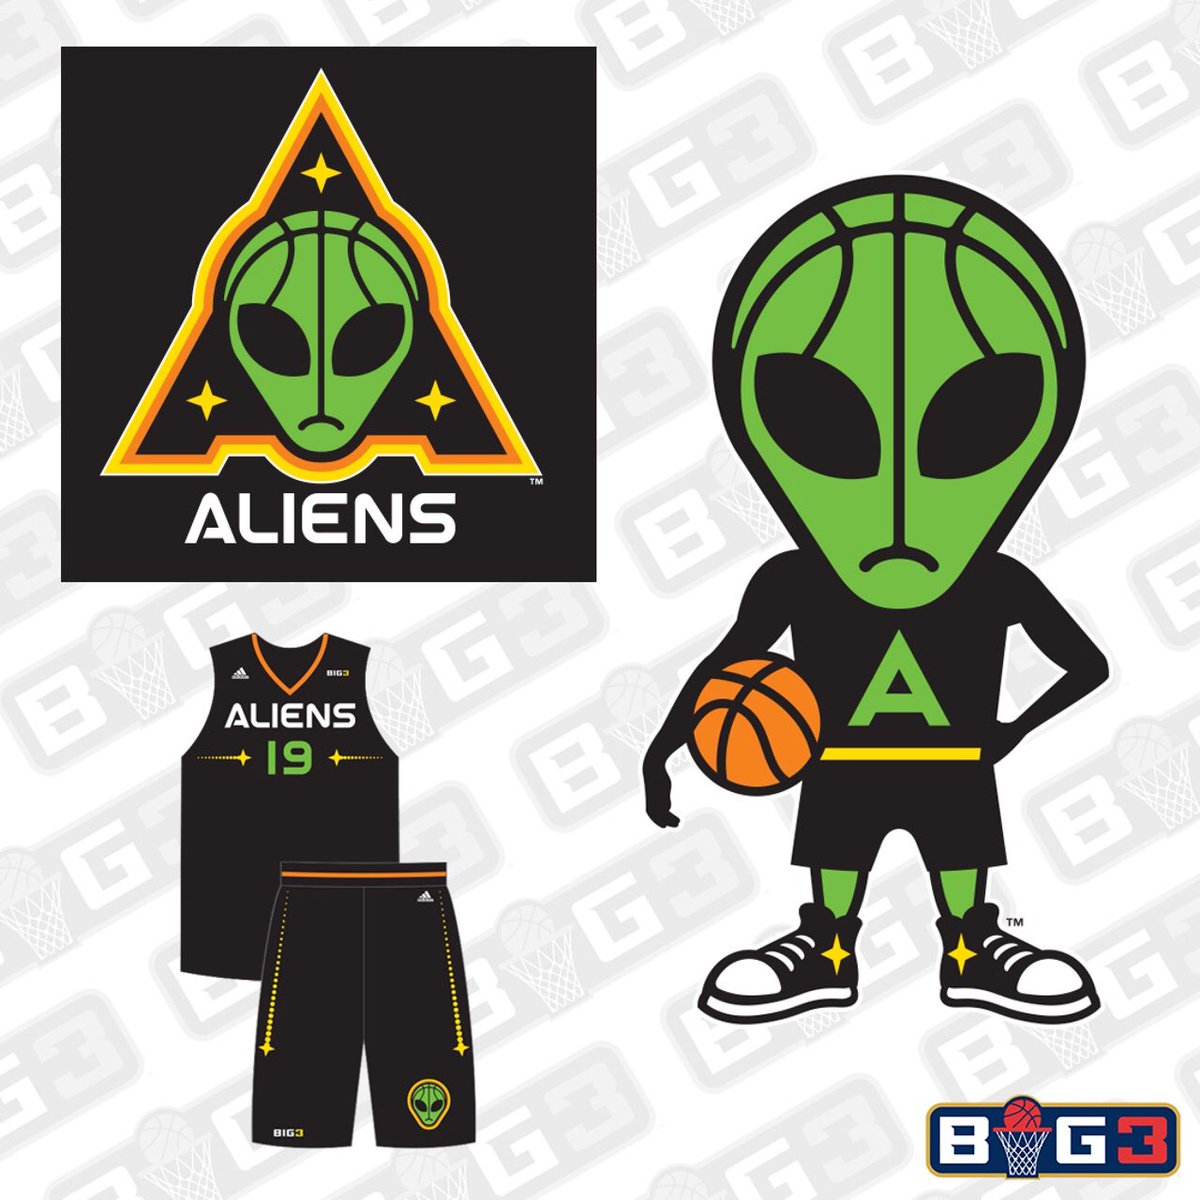 RT @Ballislife: Exclusive look at the jerseys and logo of brand new @thebig3 team Aliens!! https://t.co/3CoNYZR4Ii